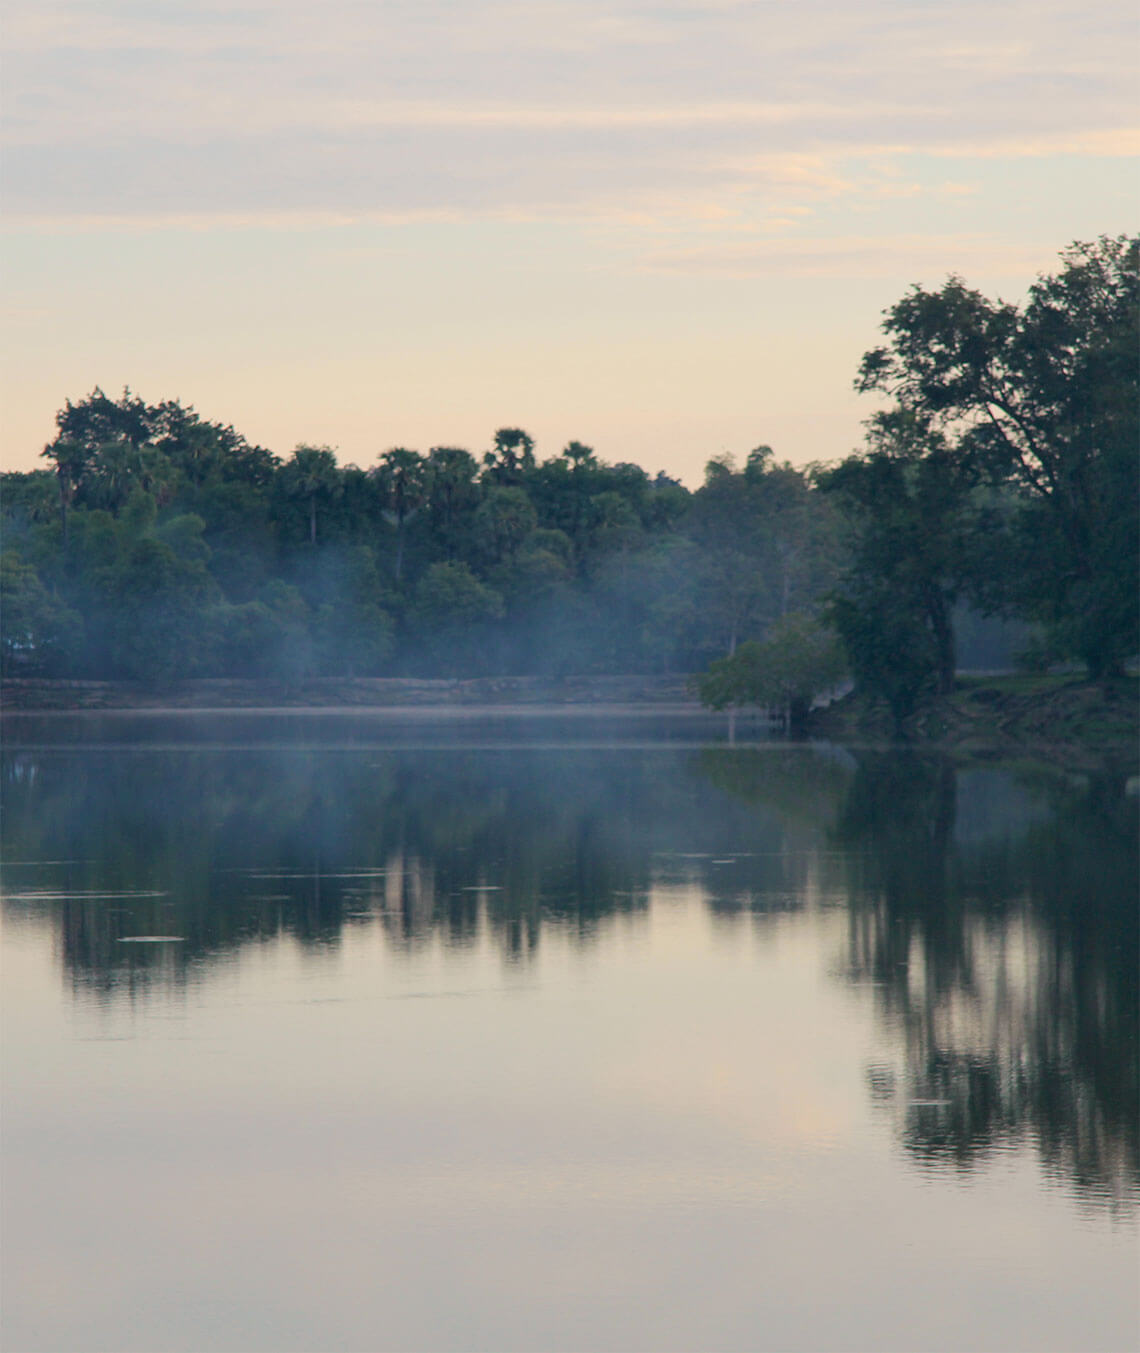 moat with fog in the morning at Angkor Wat